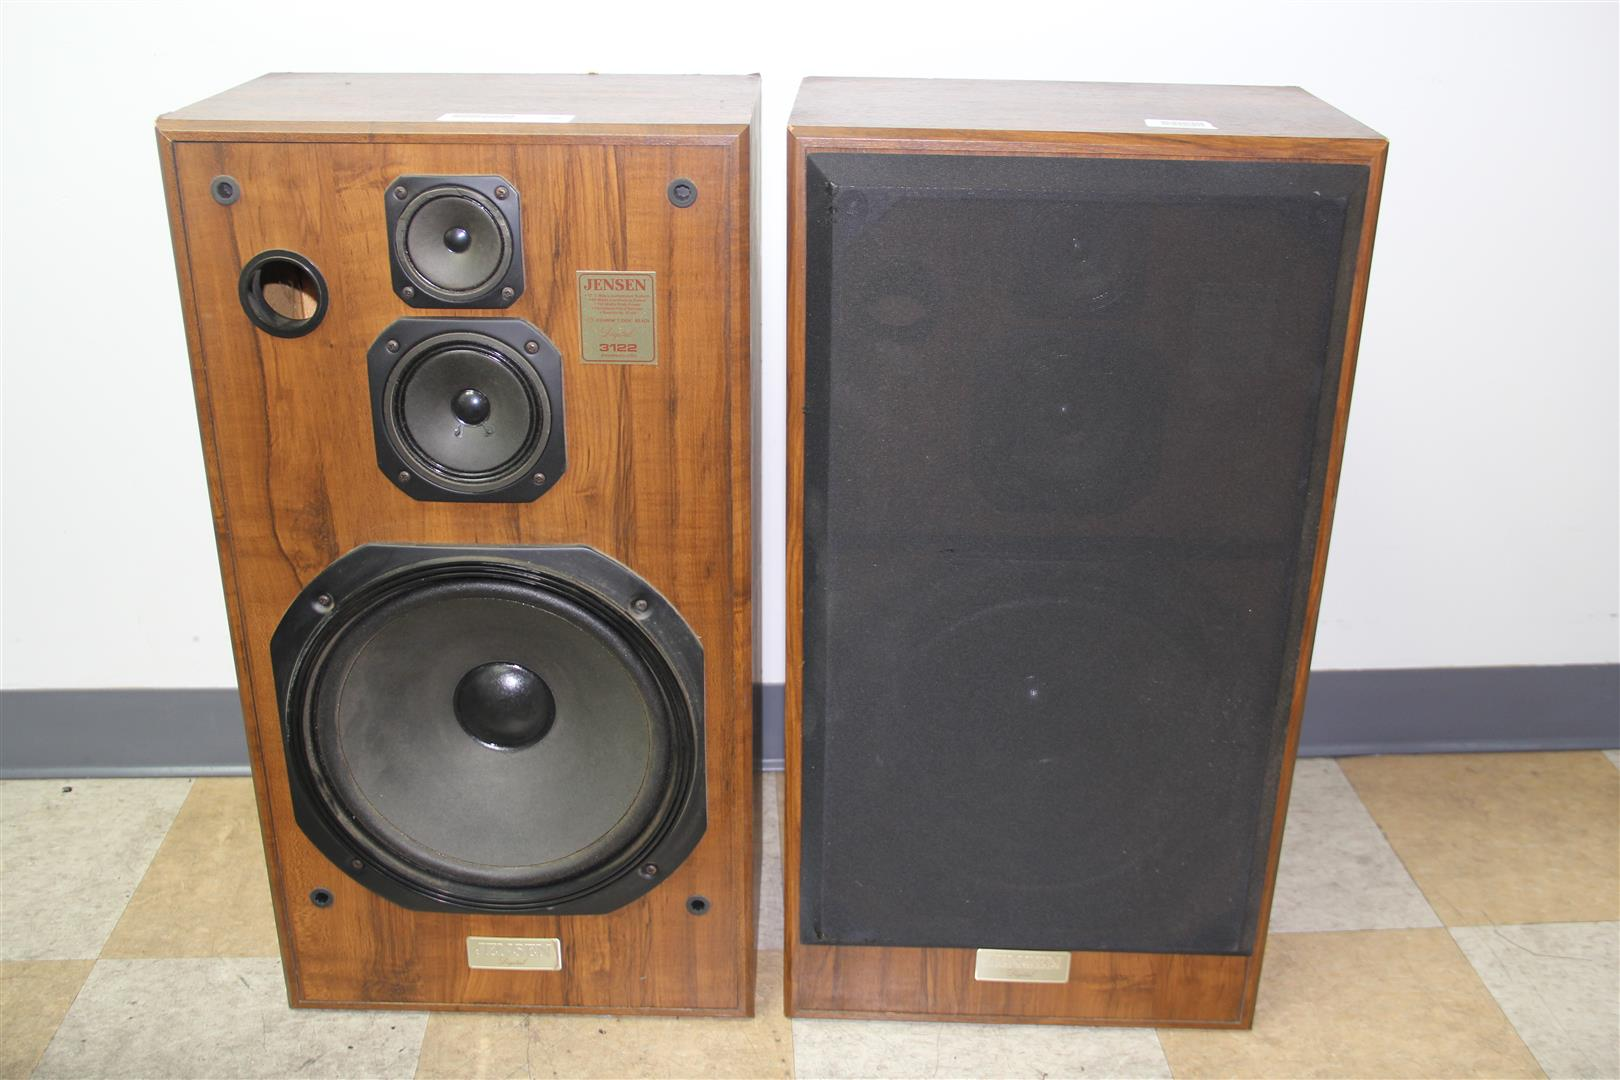 12 Inch Floor Speakers Of Pair Of Vintage Jensen 3122 Floor Standing 12 Inch 3 Way